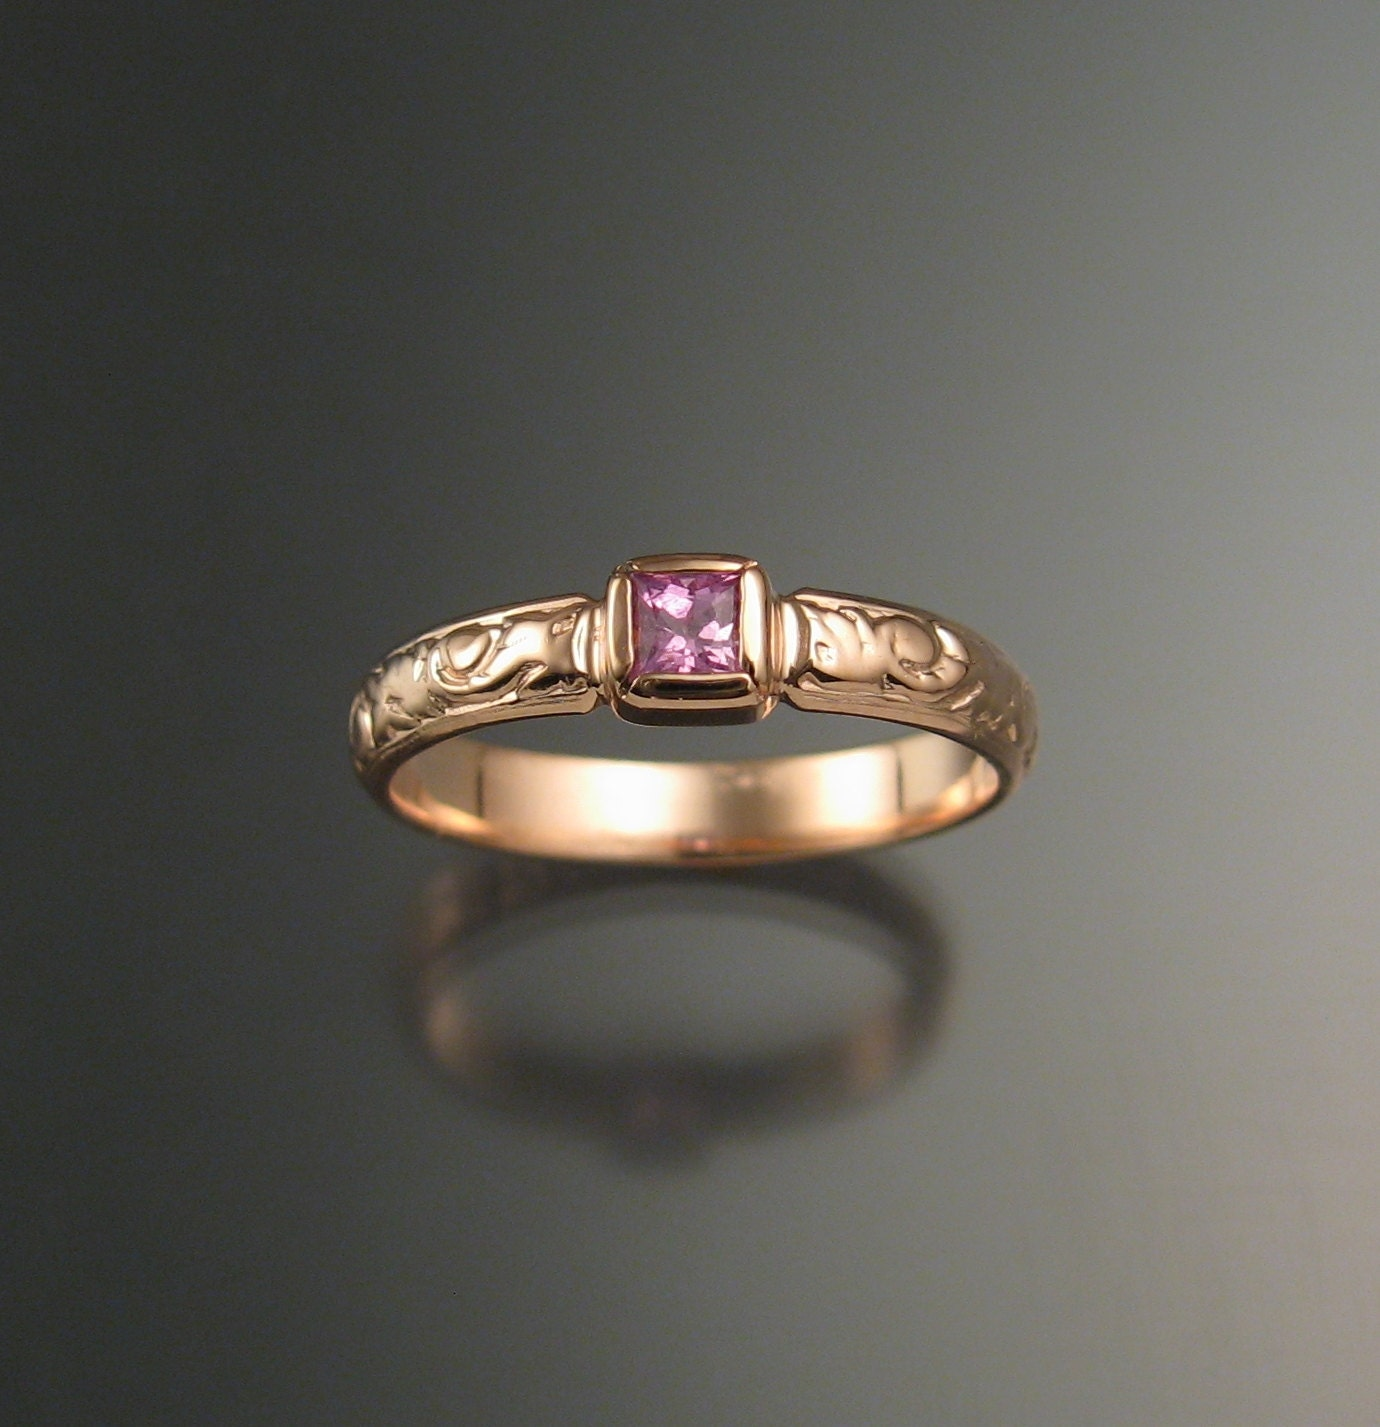 Pink Sapphire Princess Cut Stone Wedding Ring 14k Rose Gold Victorian Bezel Set Pink Diamond Substitute Ring Made To Order In Your Size